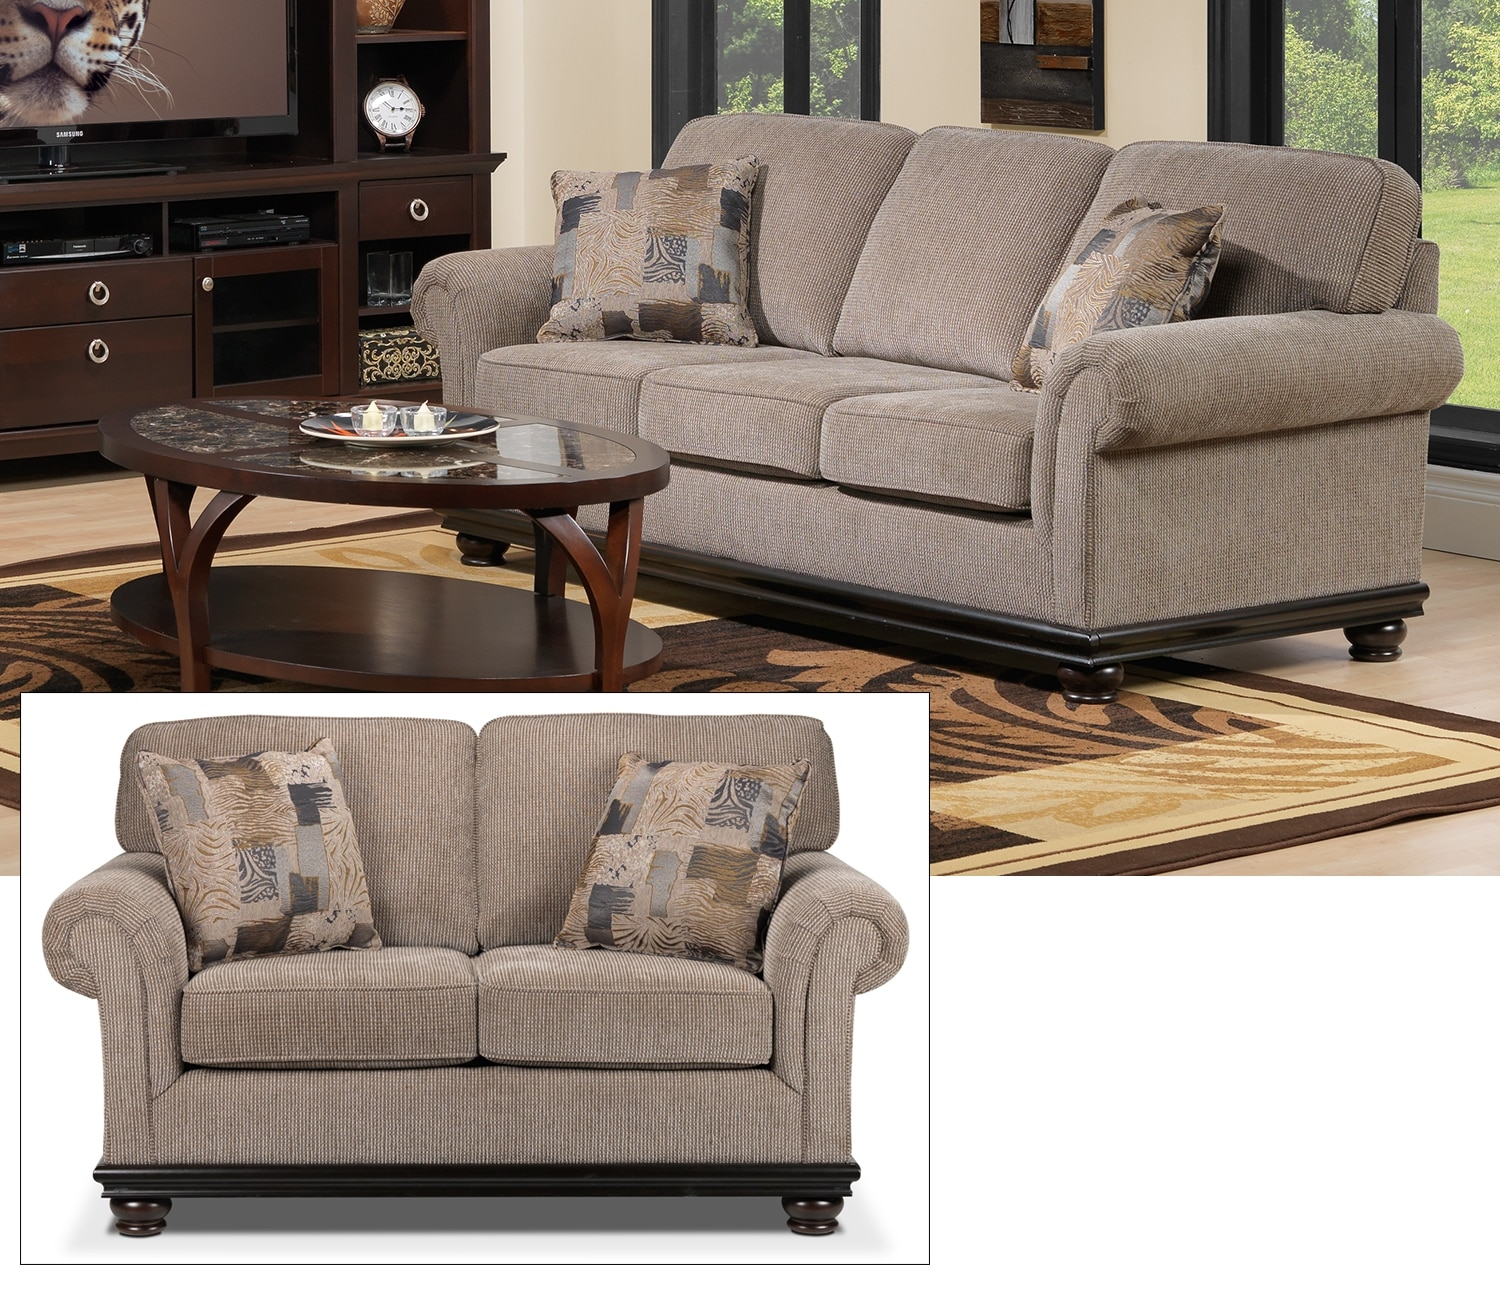 Tarano Sofa and Loveseat Set - Light Brown